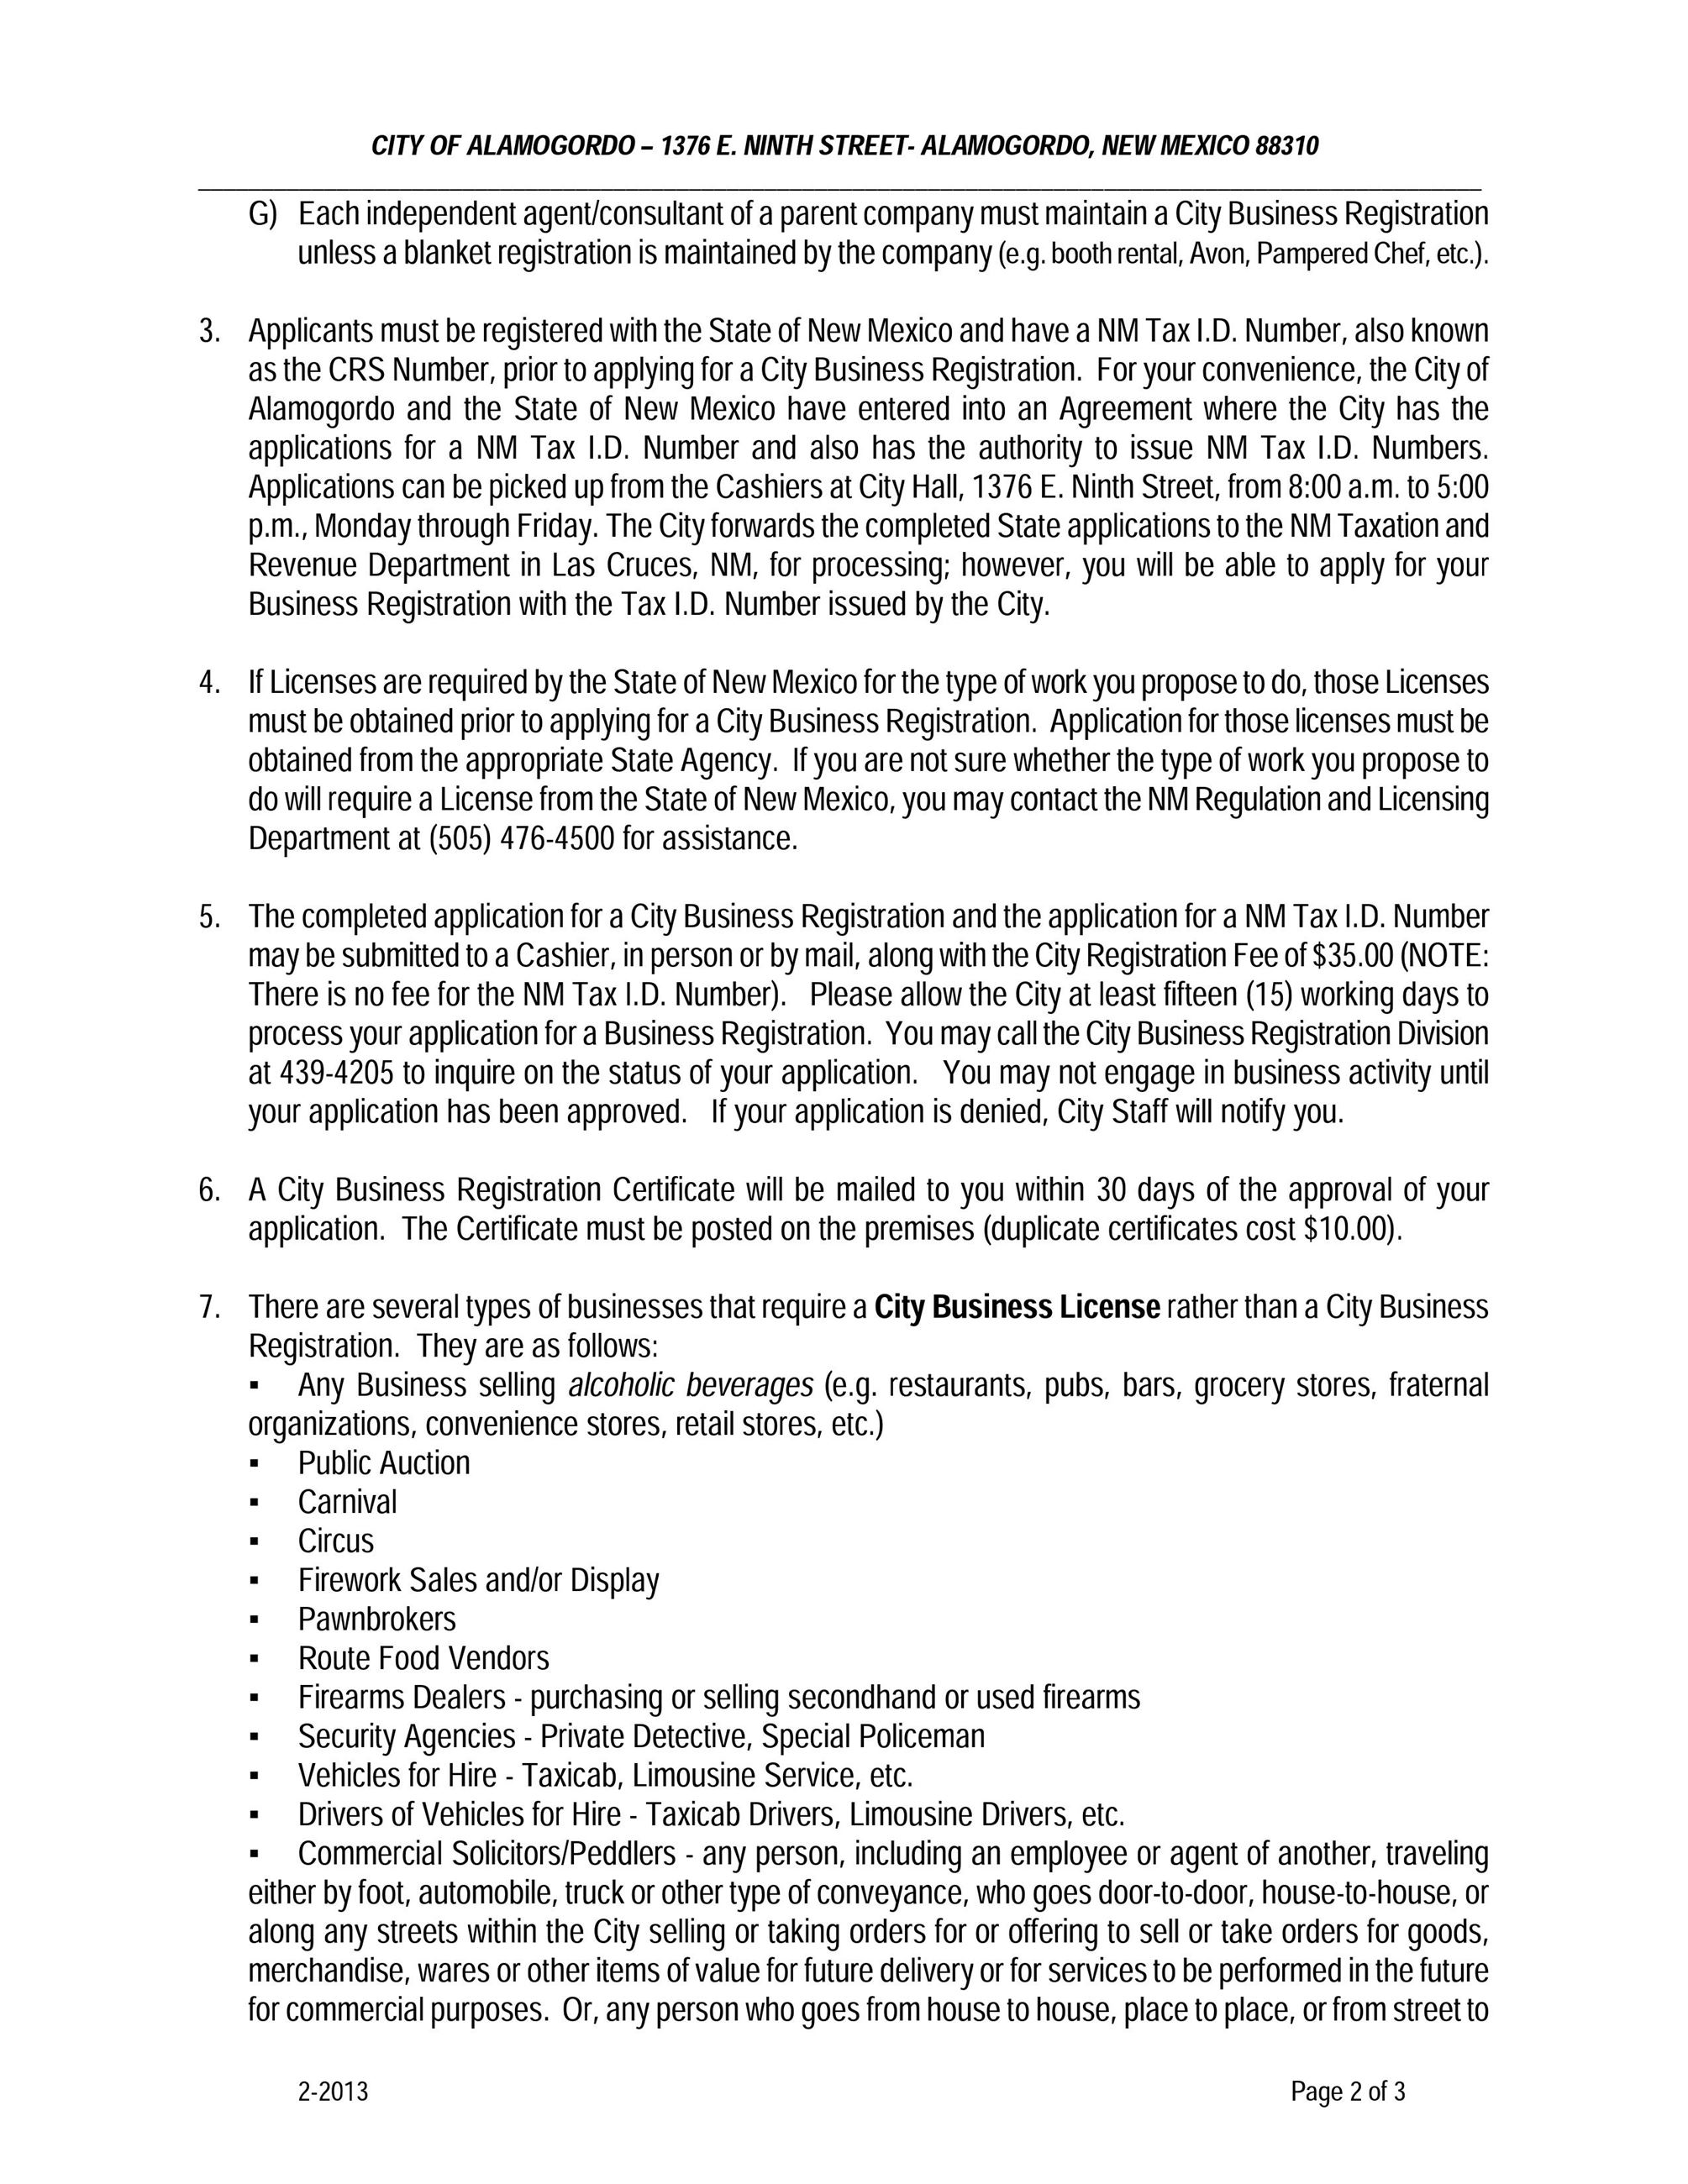 City of Alamogordo Business Application Instructions, Page 2 of 3